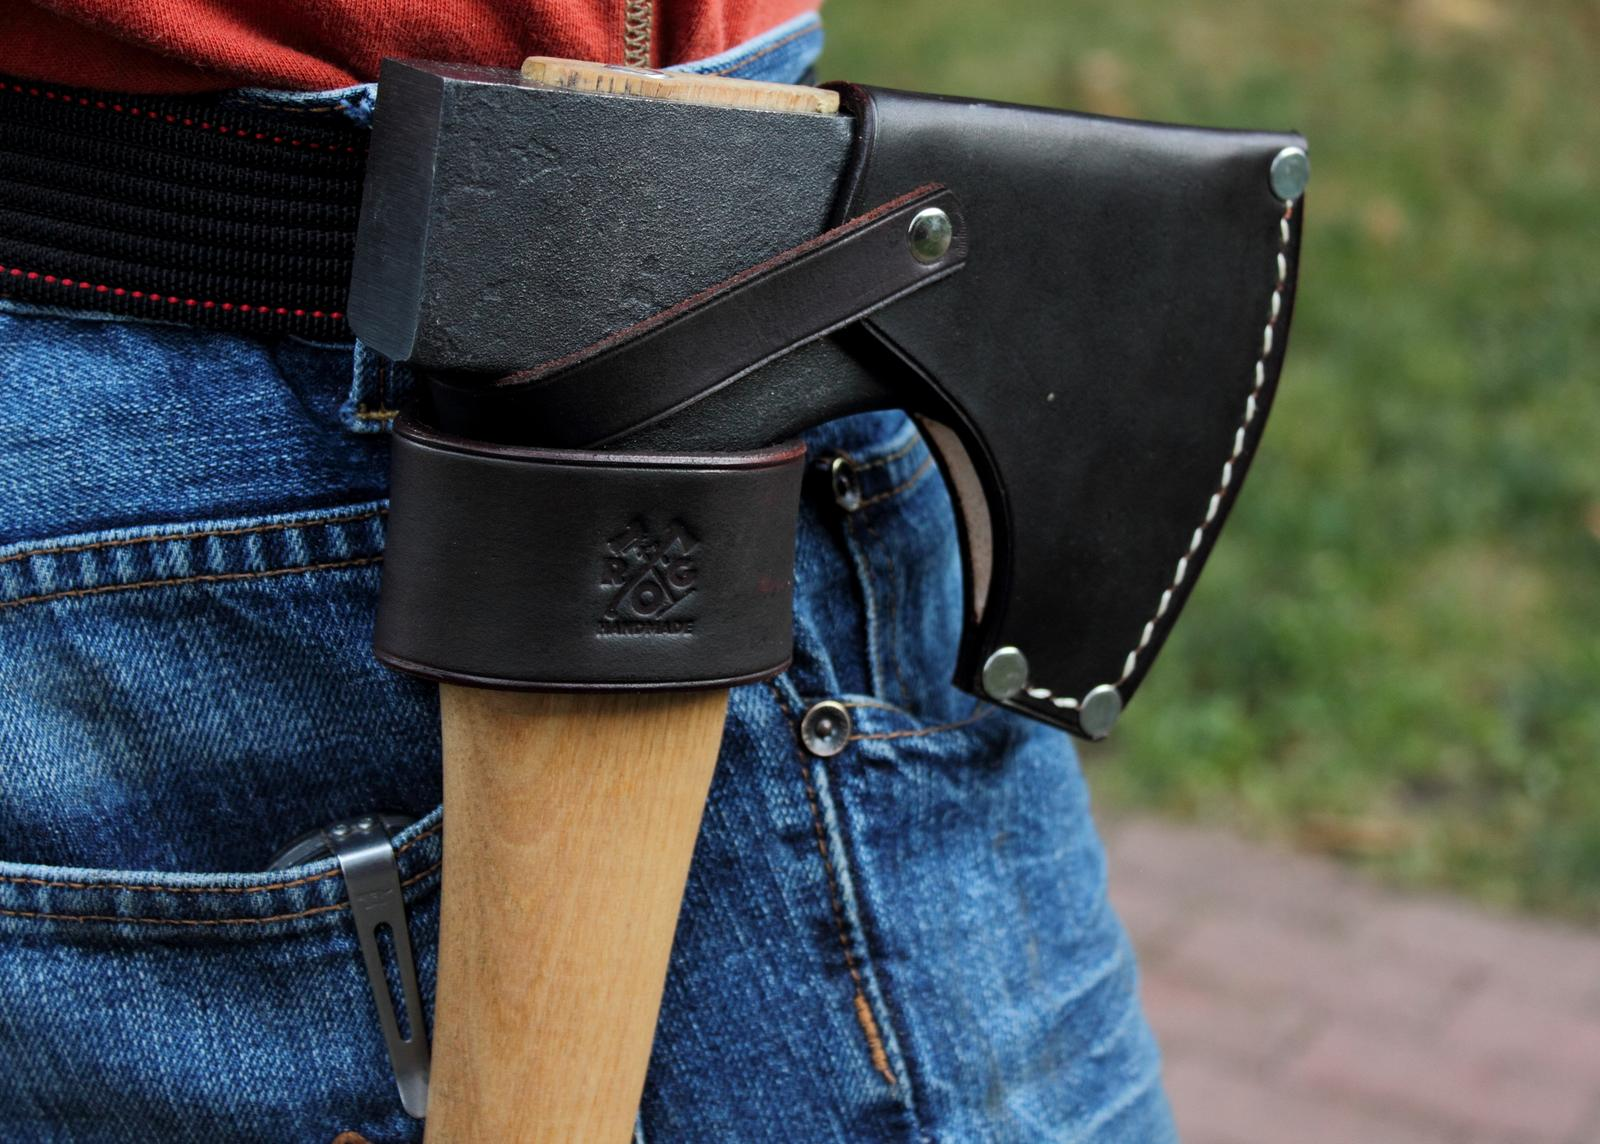 buy axe holster for any hatchet or small axe